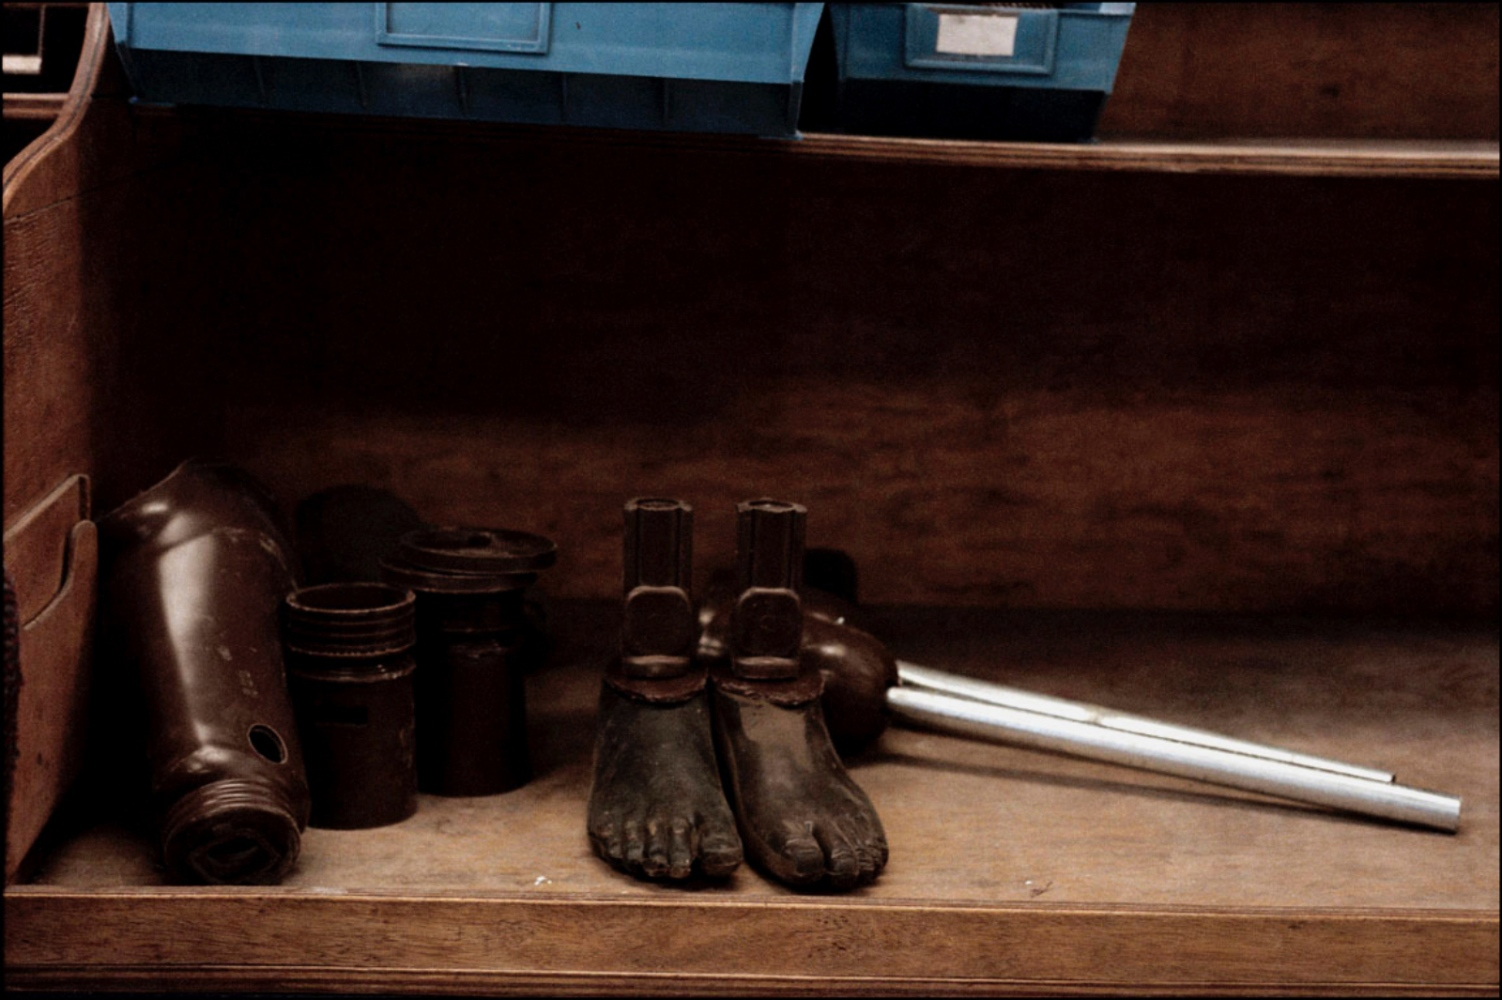 Prosthetic Feet, ICRC Orthopedic Center. Kuito, Angola, July 2000